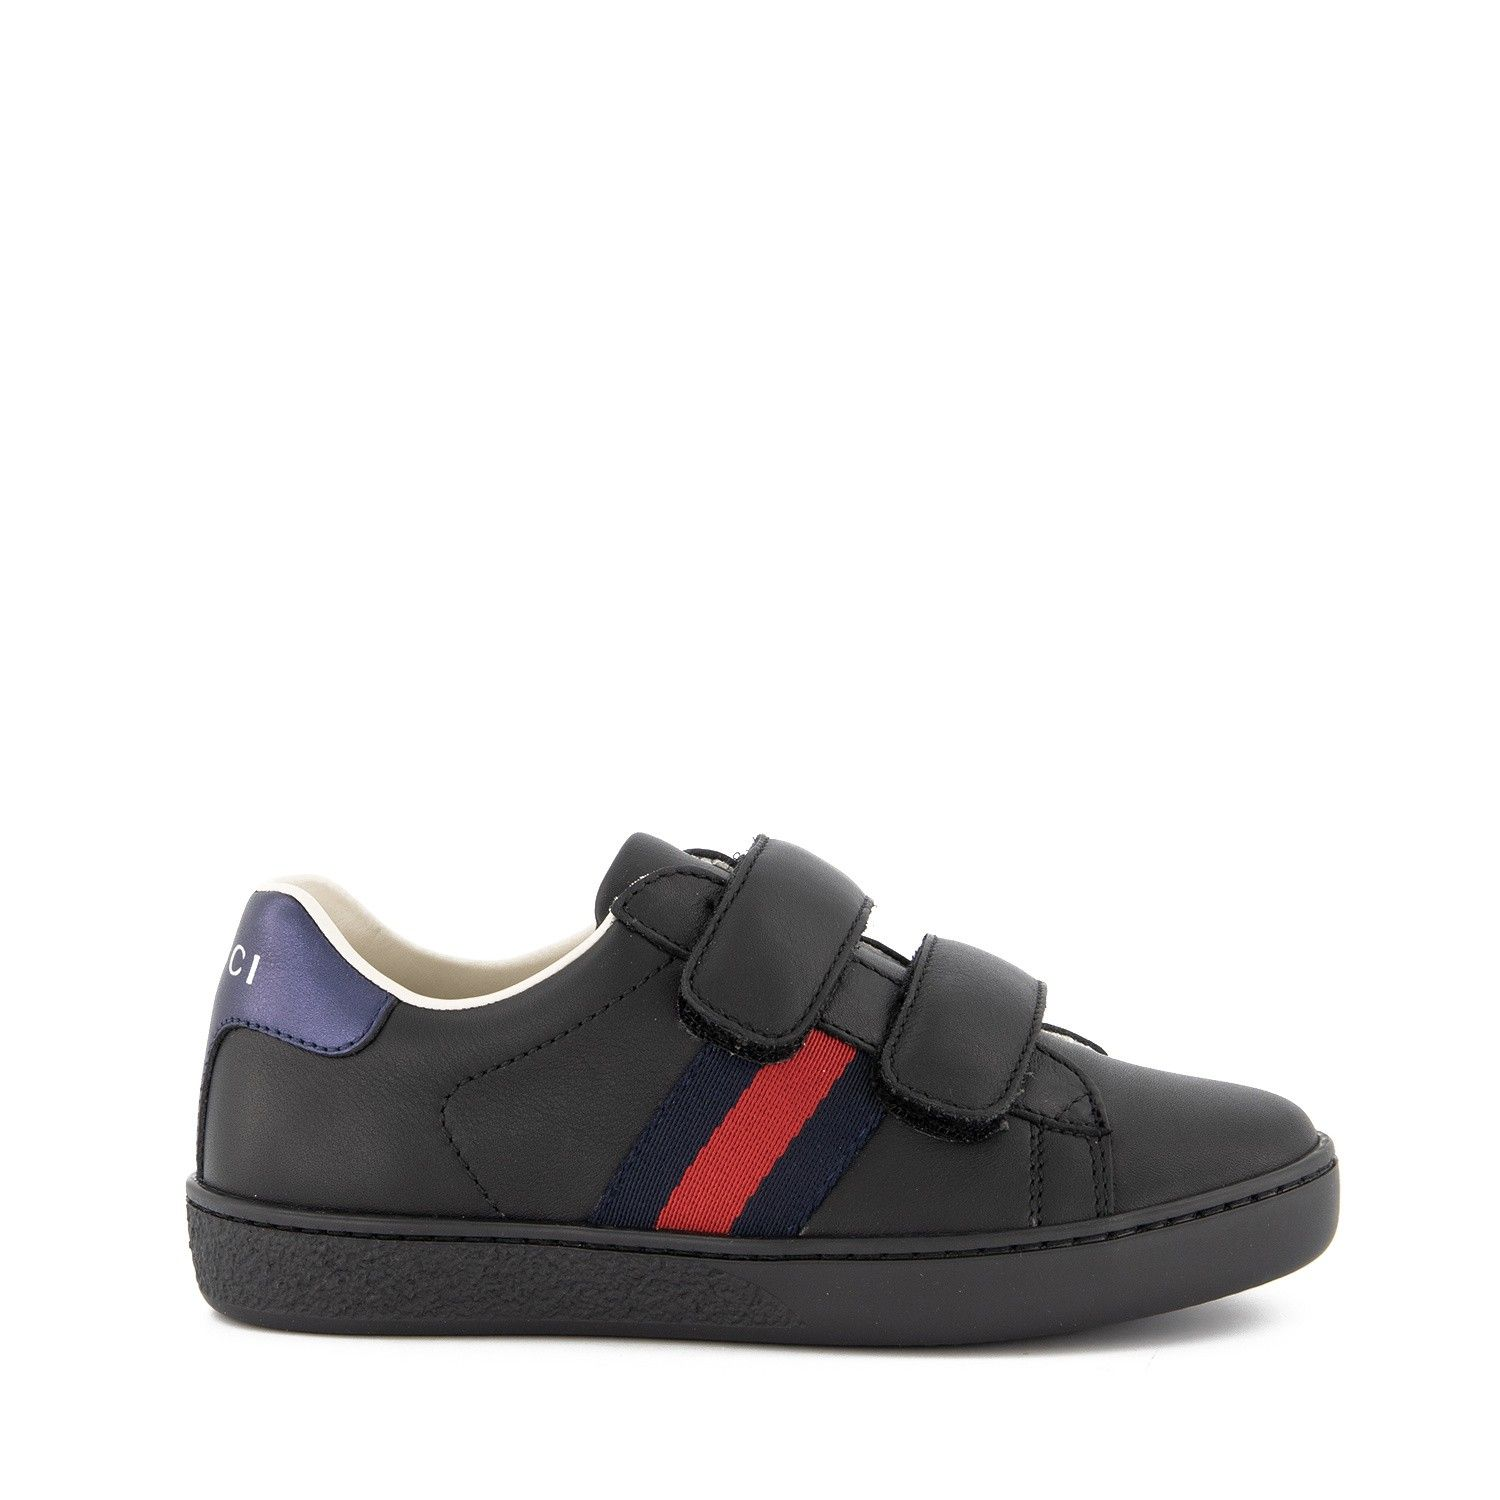 Picture of Gucci 455496 CPWP0 kids sneakers black